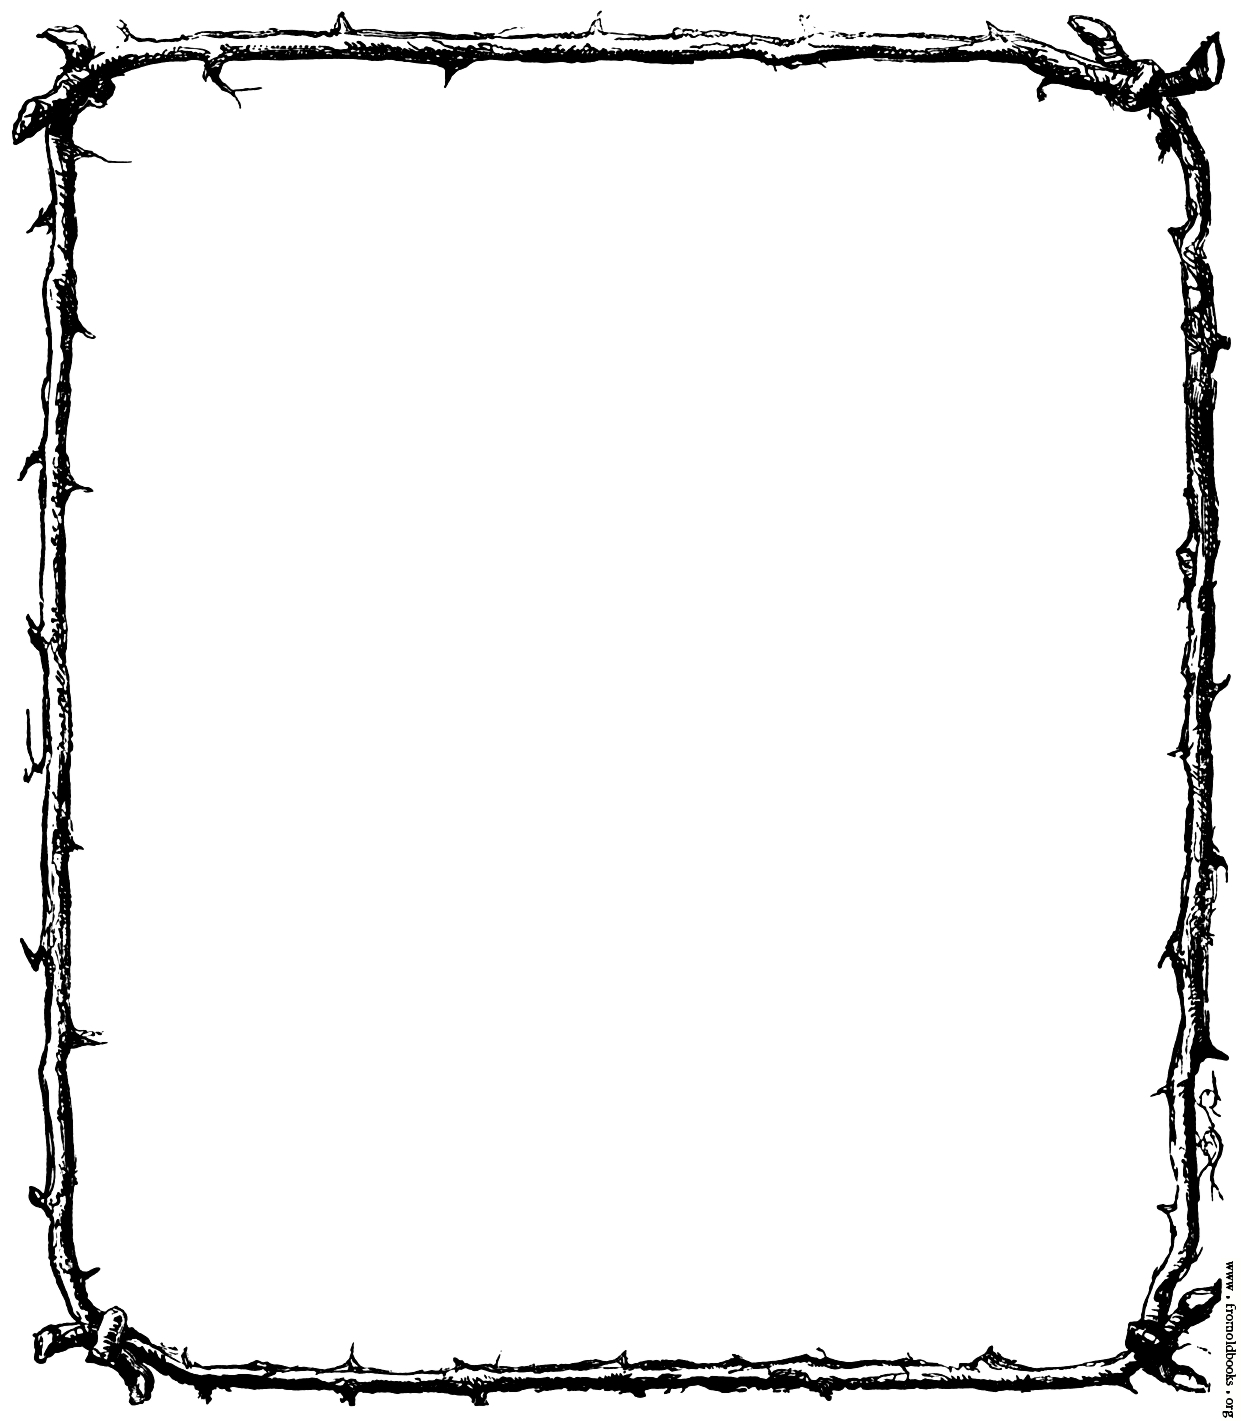 Wood border clipart free download best wood border clipart on 1235x1300 jungle frame clipart 1241x1421 western frames borders voltagebd Choice Image